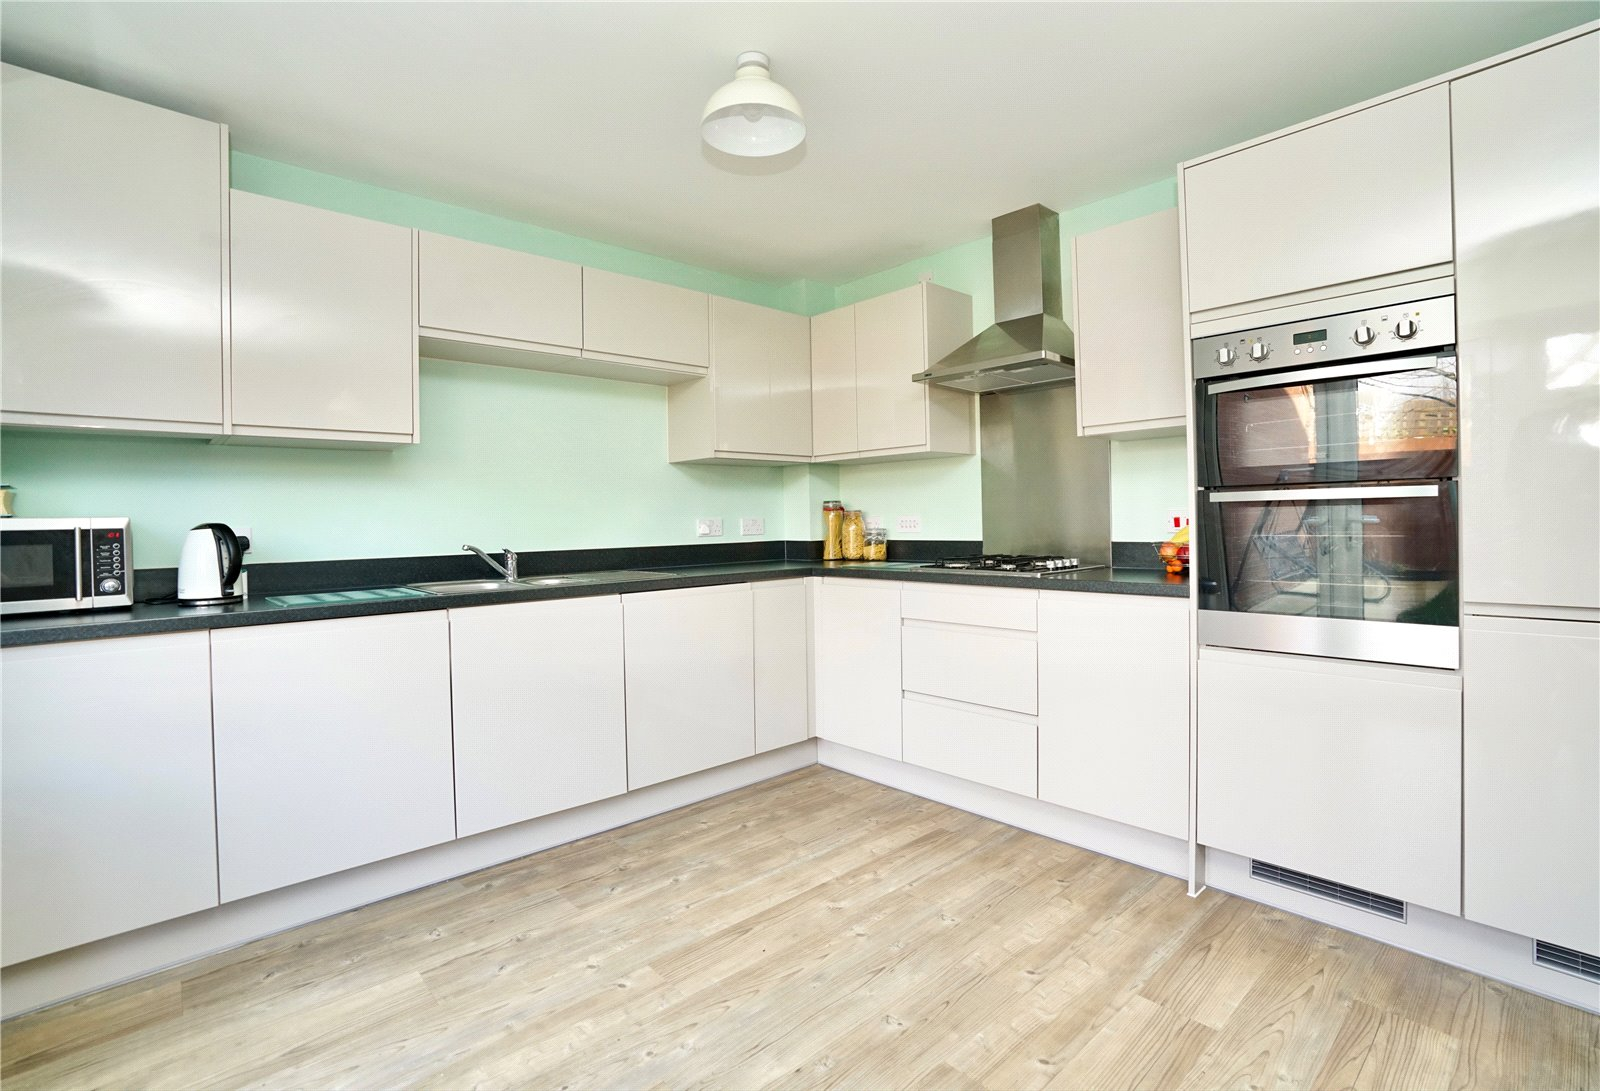 4 bed house for sale in Whinfell Close, Eaton Socon 2